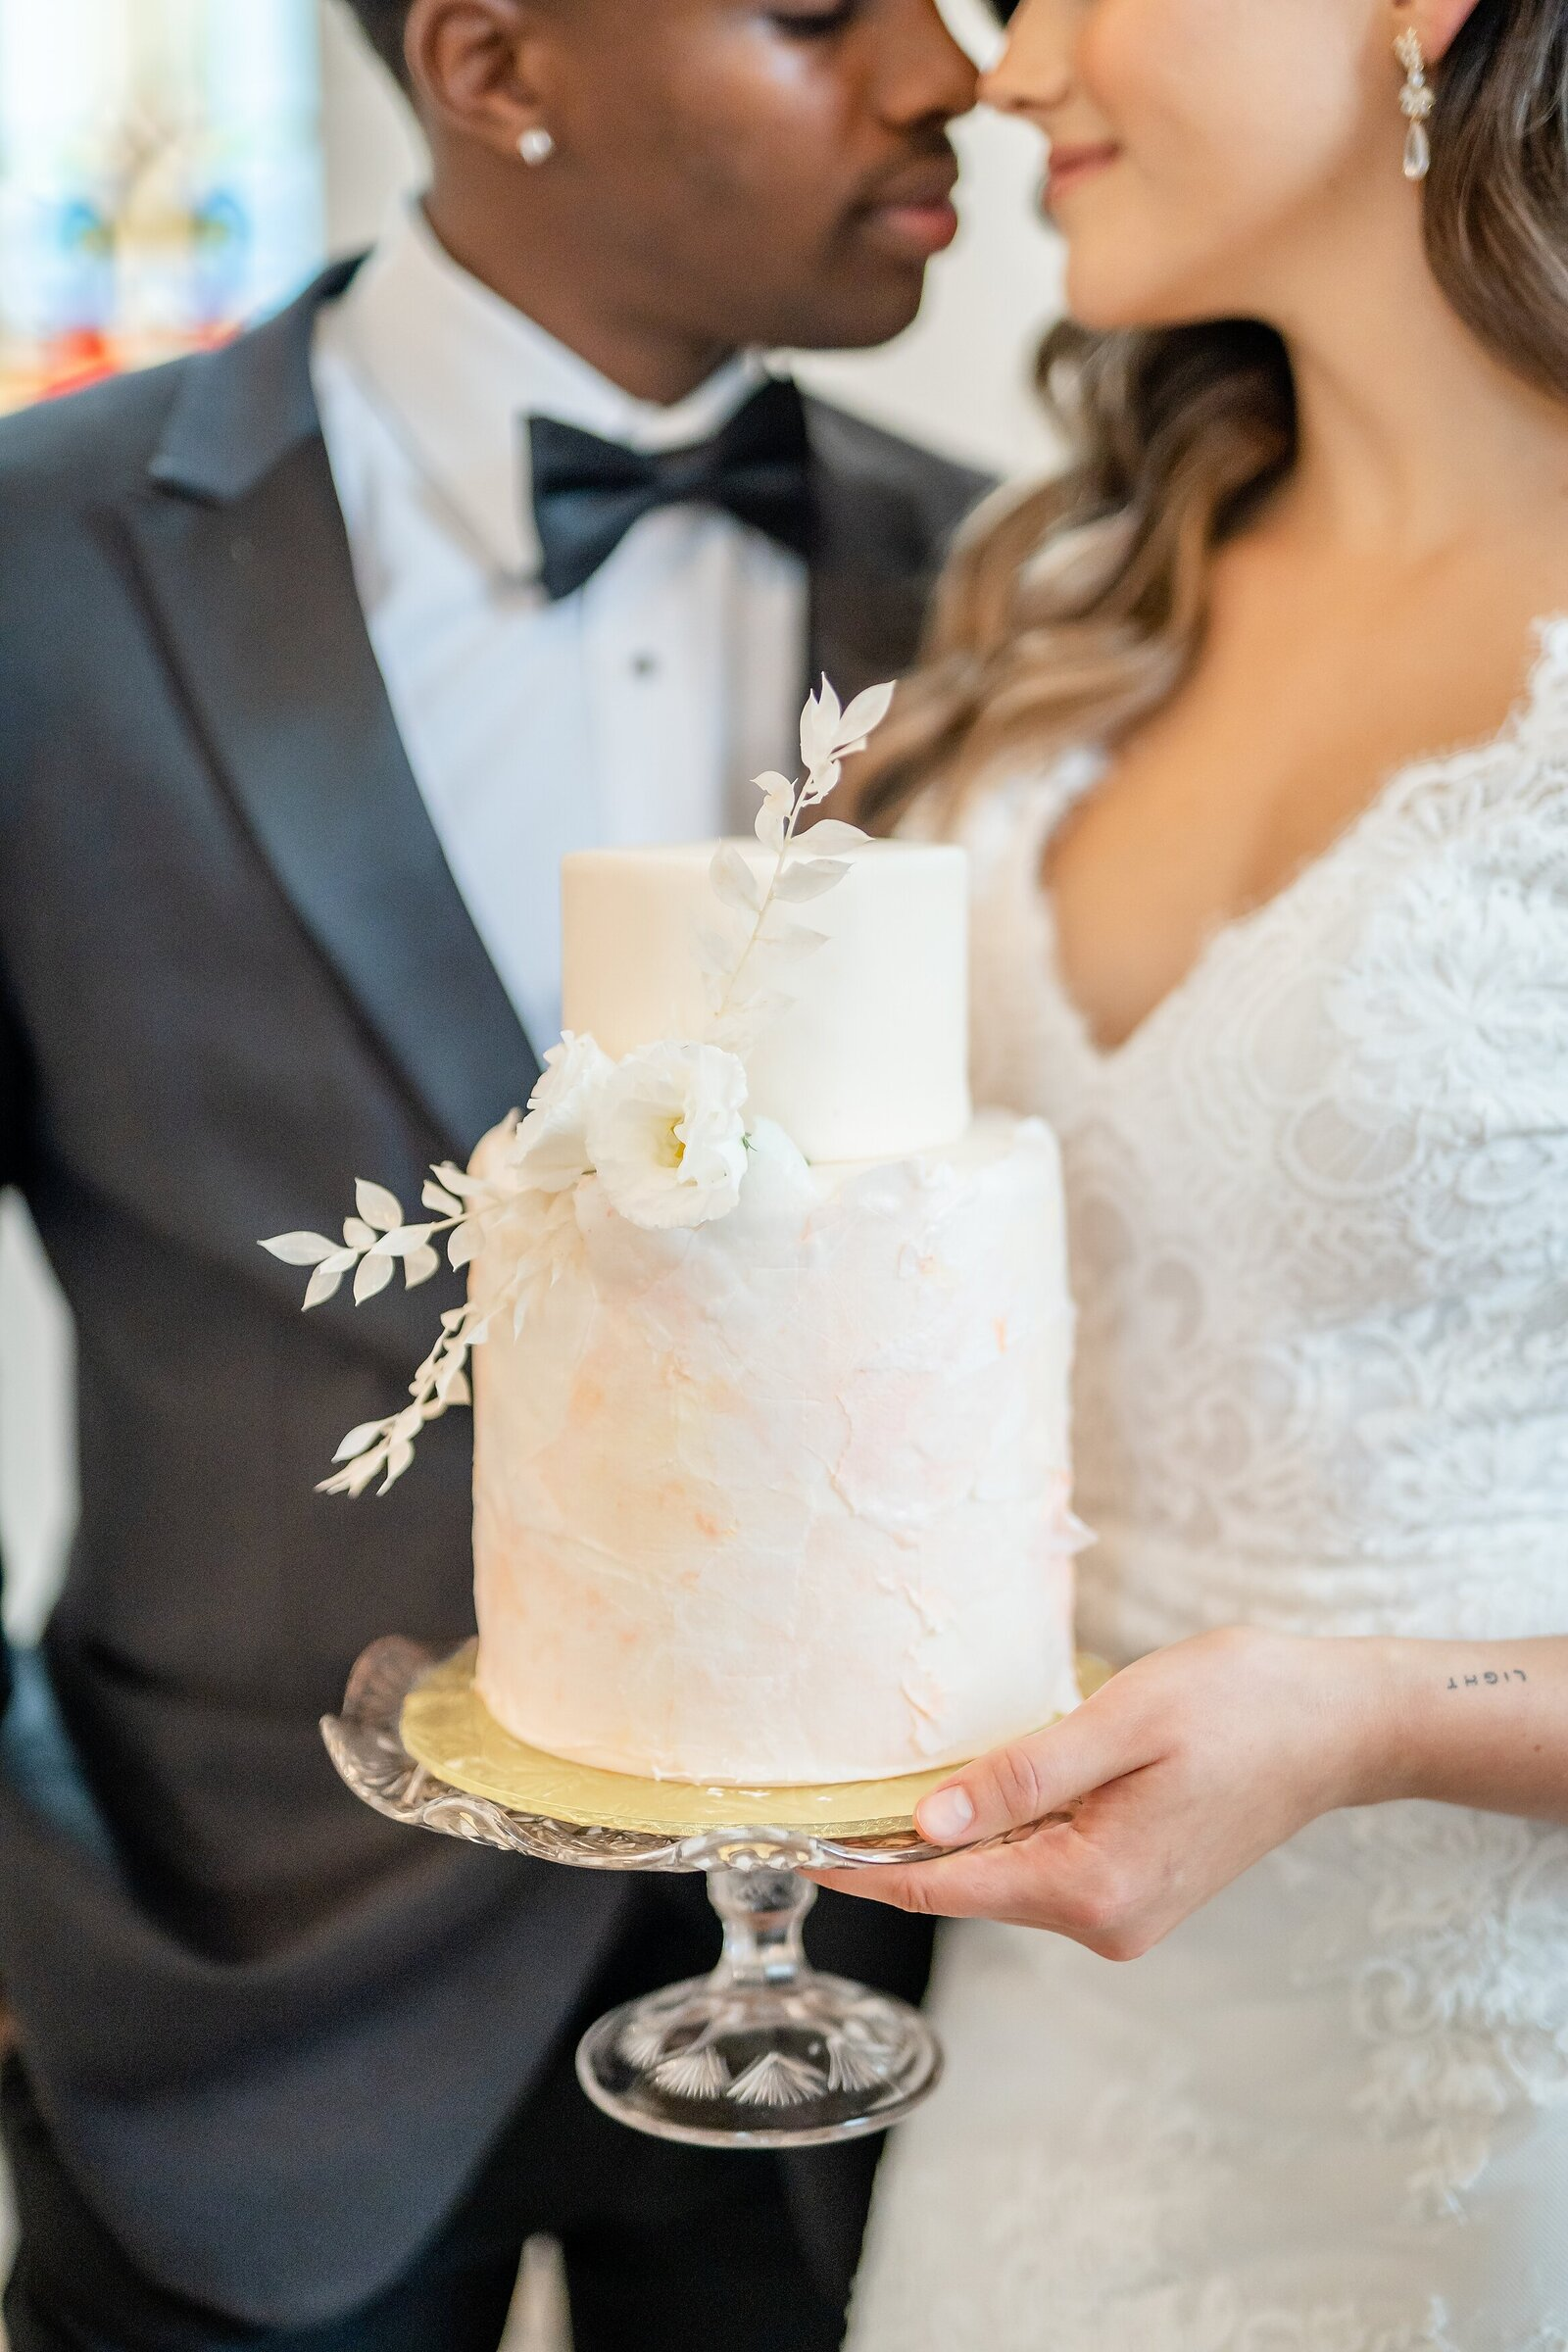 Couple-holding-a-blush-2-tiered-wedding-cake-at-La-Petite-Chapelle